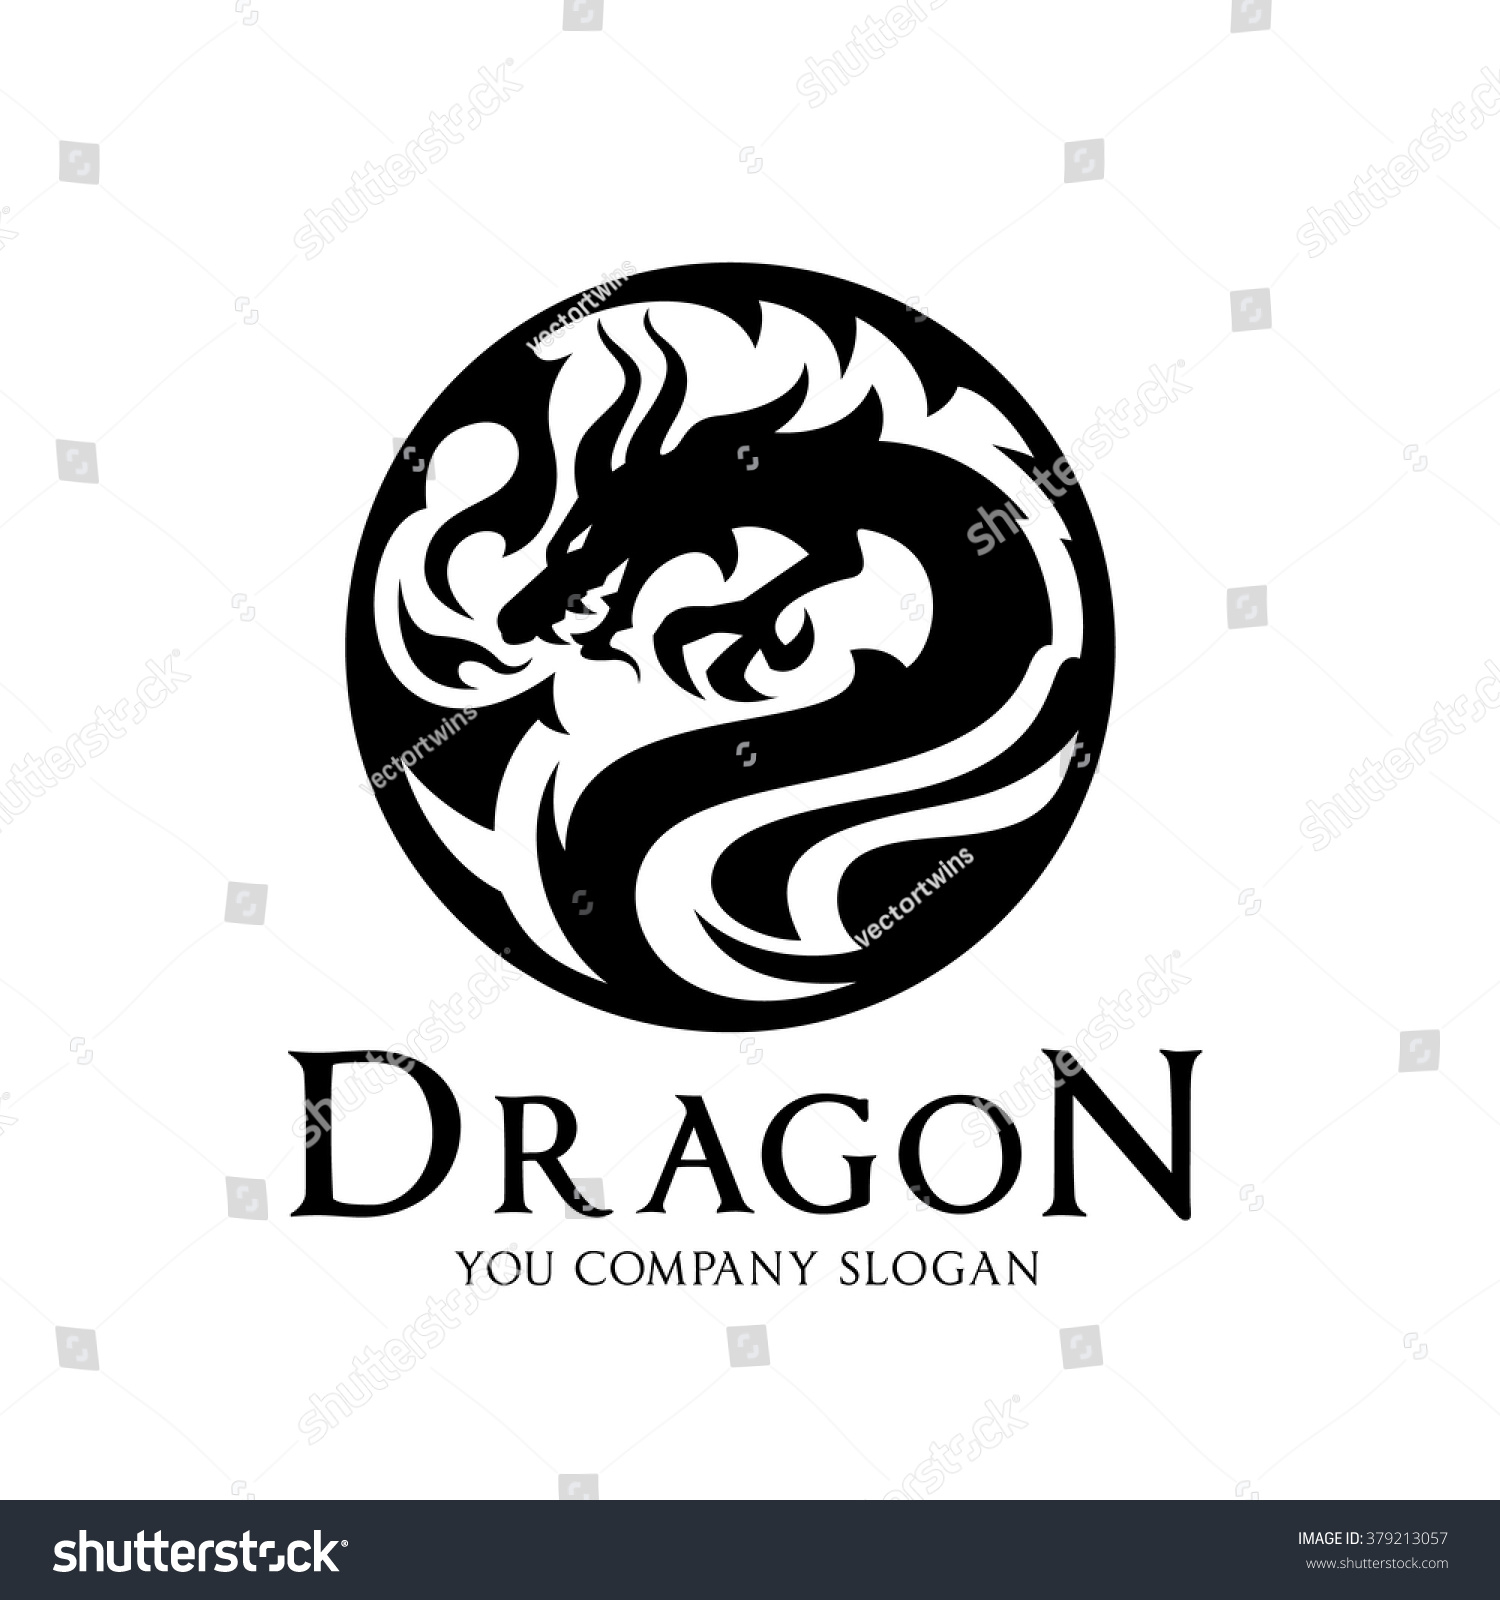 Dragon LogoVector Logo Template